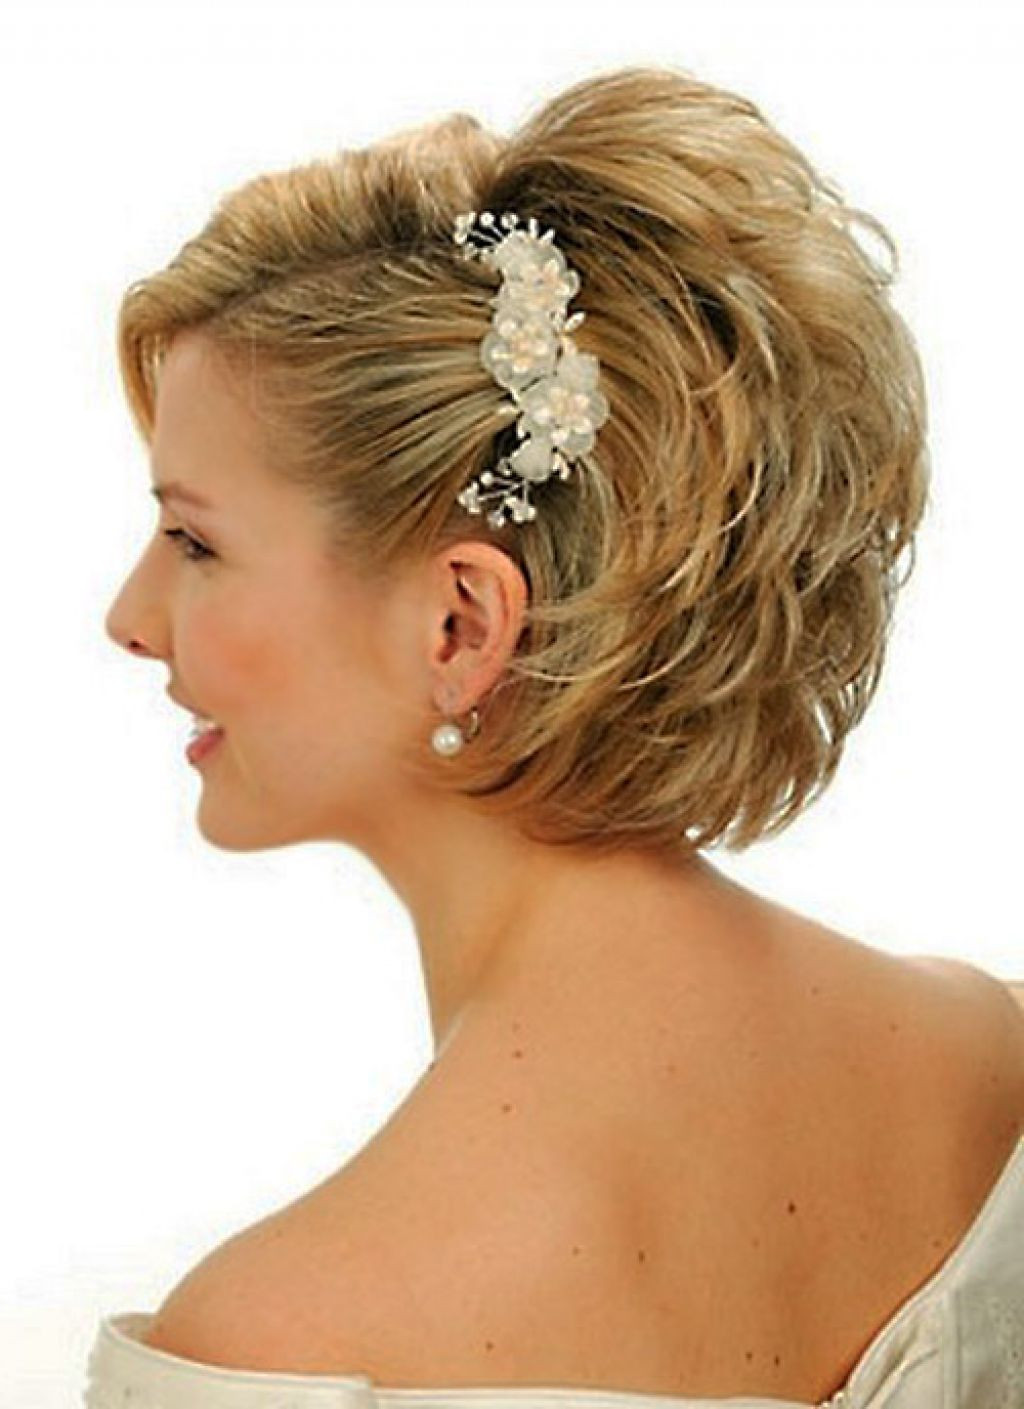 Elegant Hairstyles For Short Hair  25 Most Favorite Wedding Hairstyles for Short Hair The